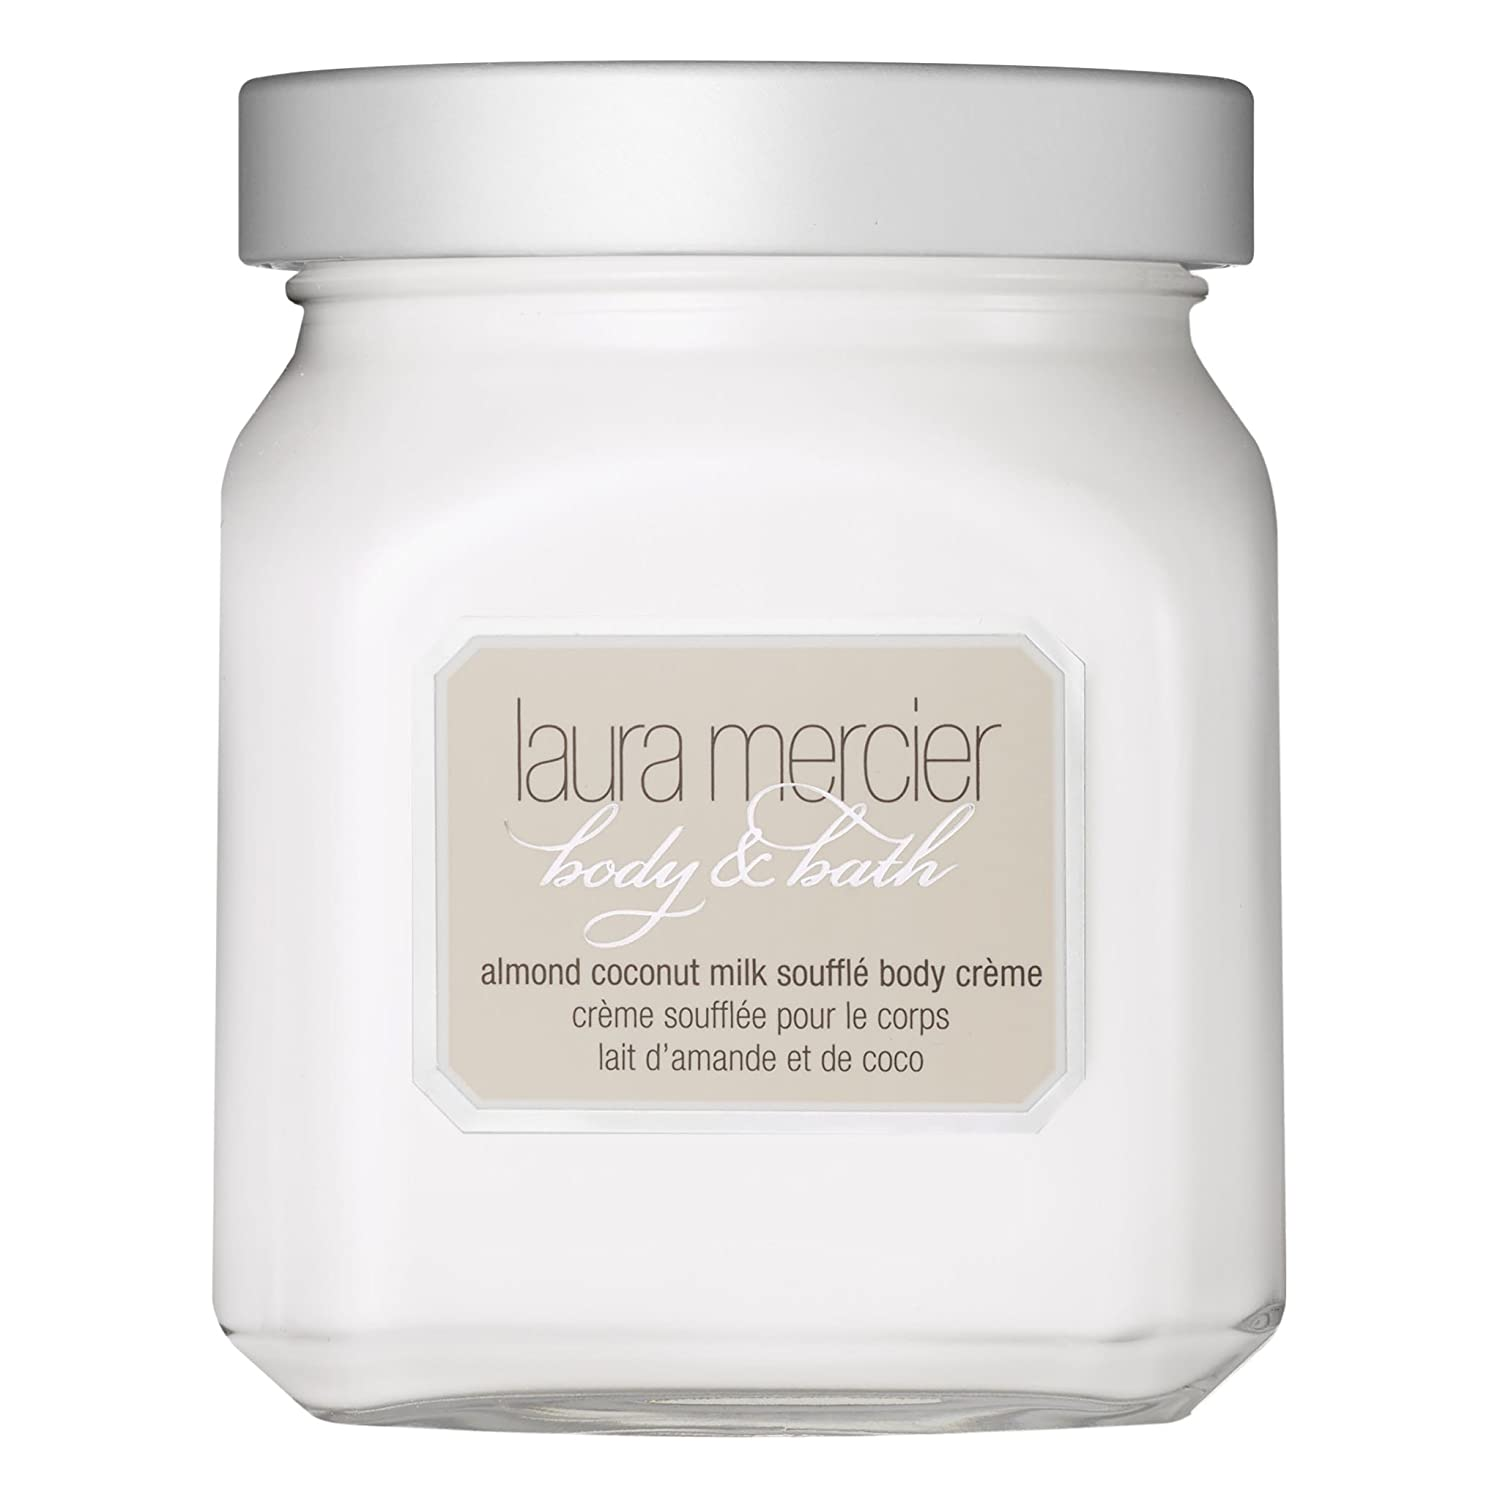 Almond Coconut Milk Souffle Body Creme - 300g/12oz Laura Mercier